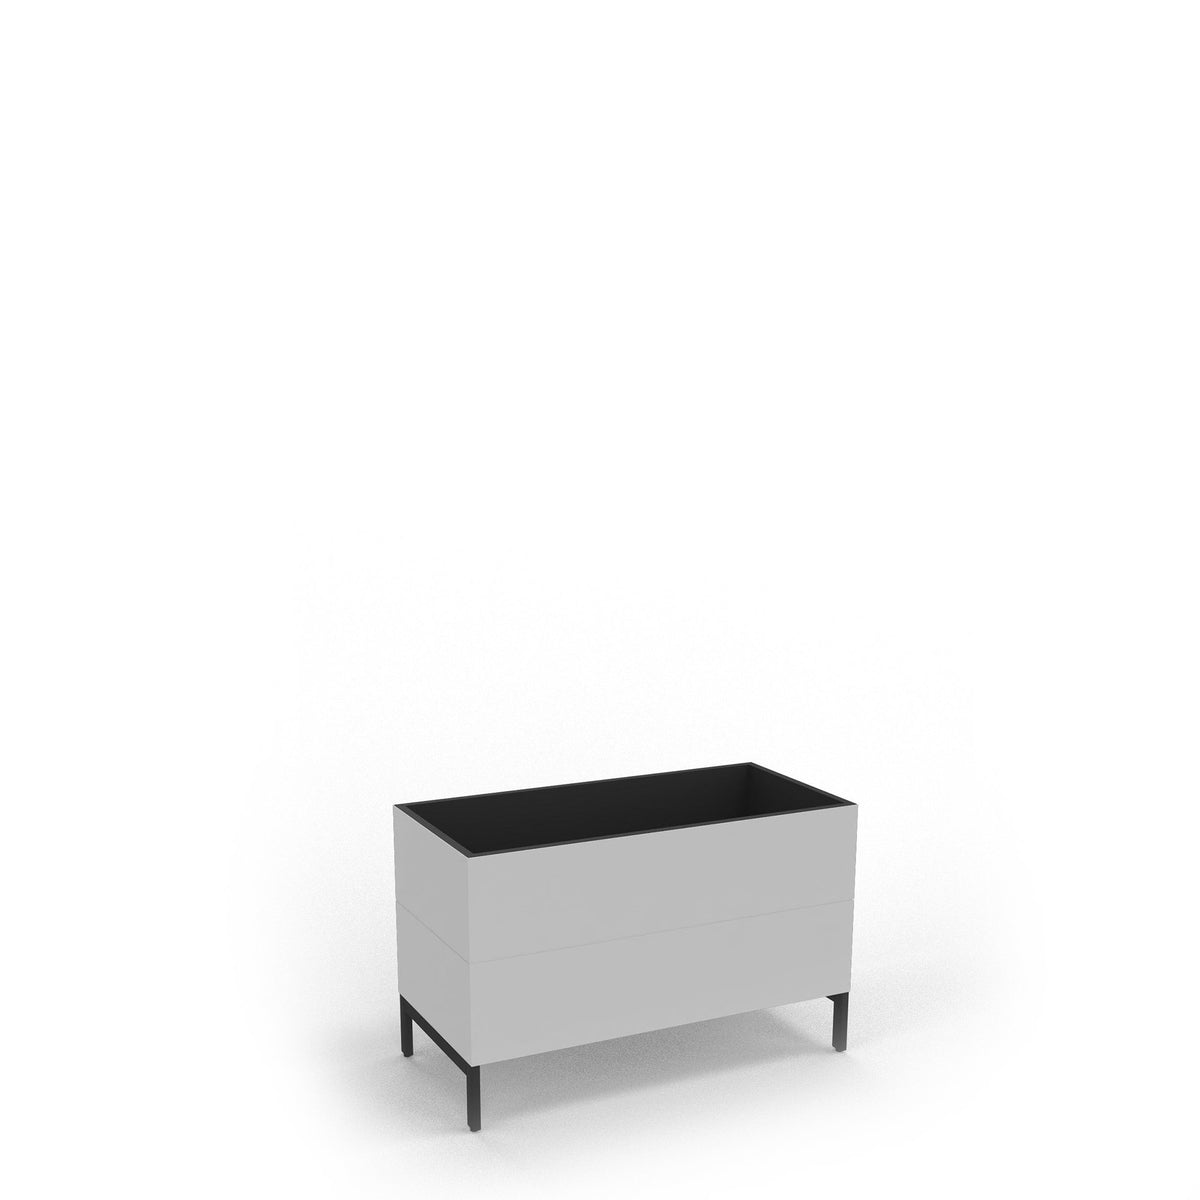 Edsbyn Office Neat Green Planter Box with Black Base 800mm White